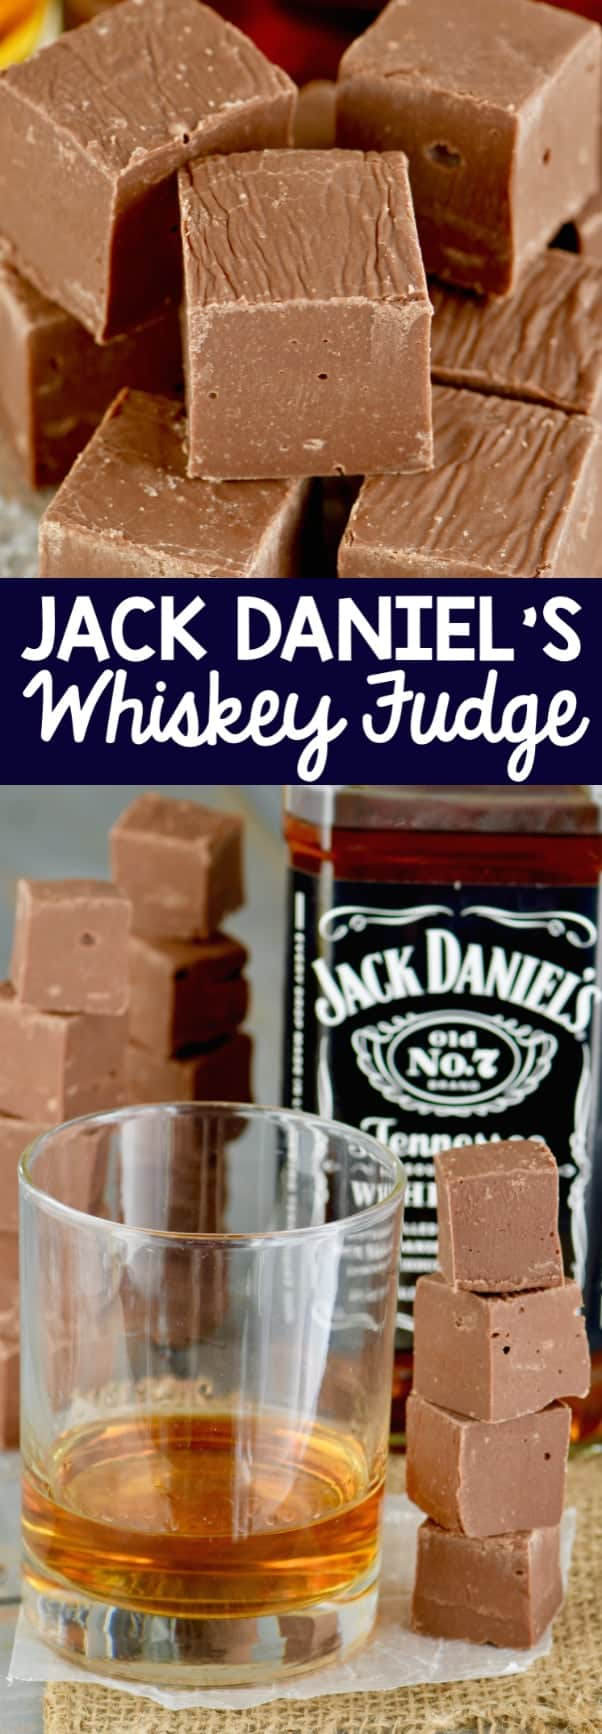 Two photos of the Jack Daniel's Whiskey Fudge that are shaped as a cube.